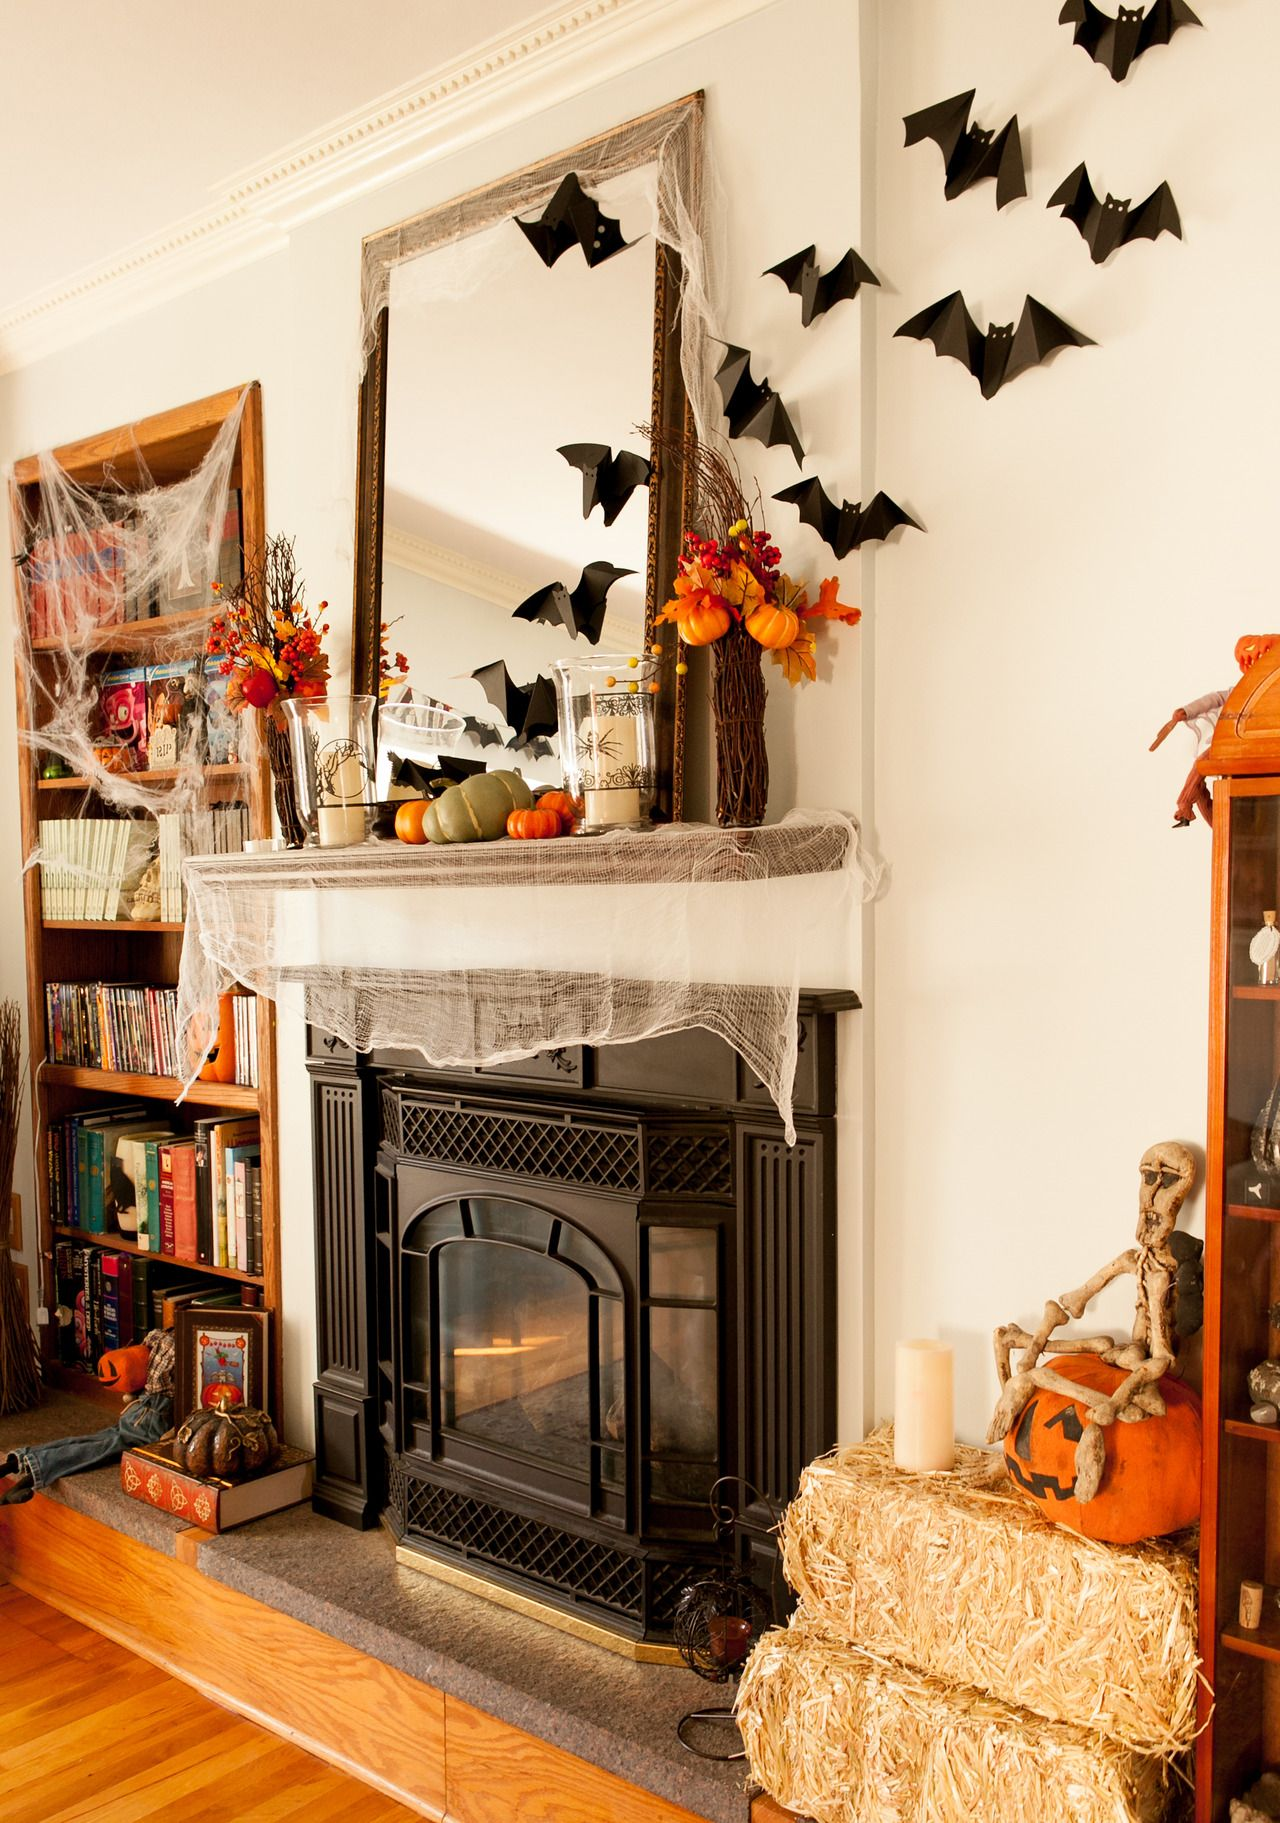 3 Simple Halloween Craft Ideas Pinterest Decoration, Mantle and - Kid Friendly Halloween Decorations